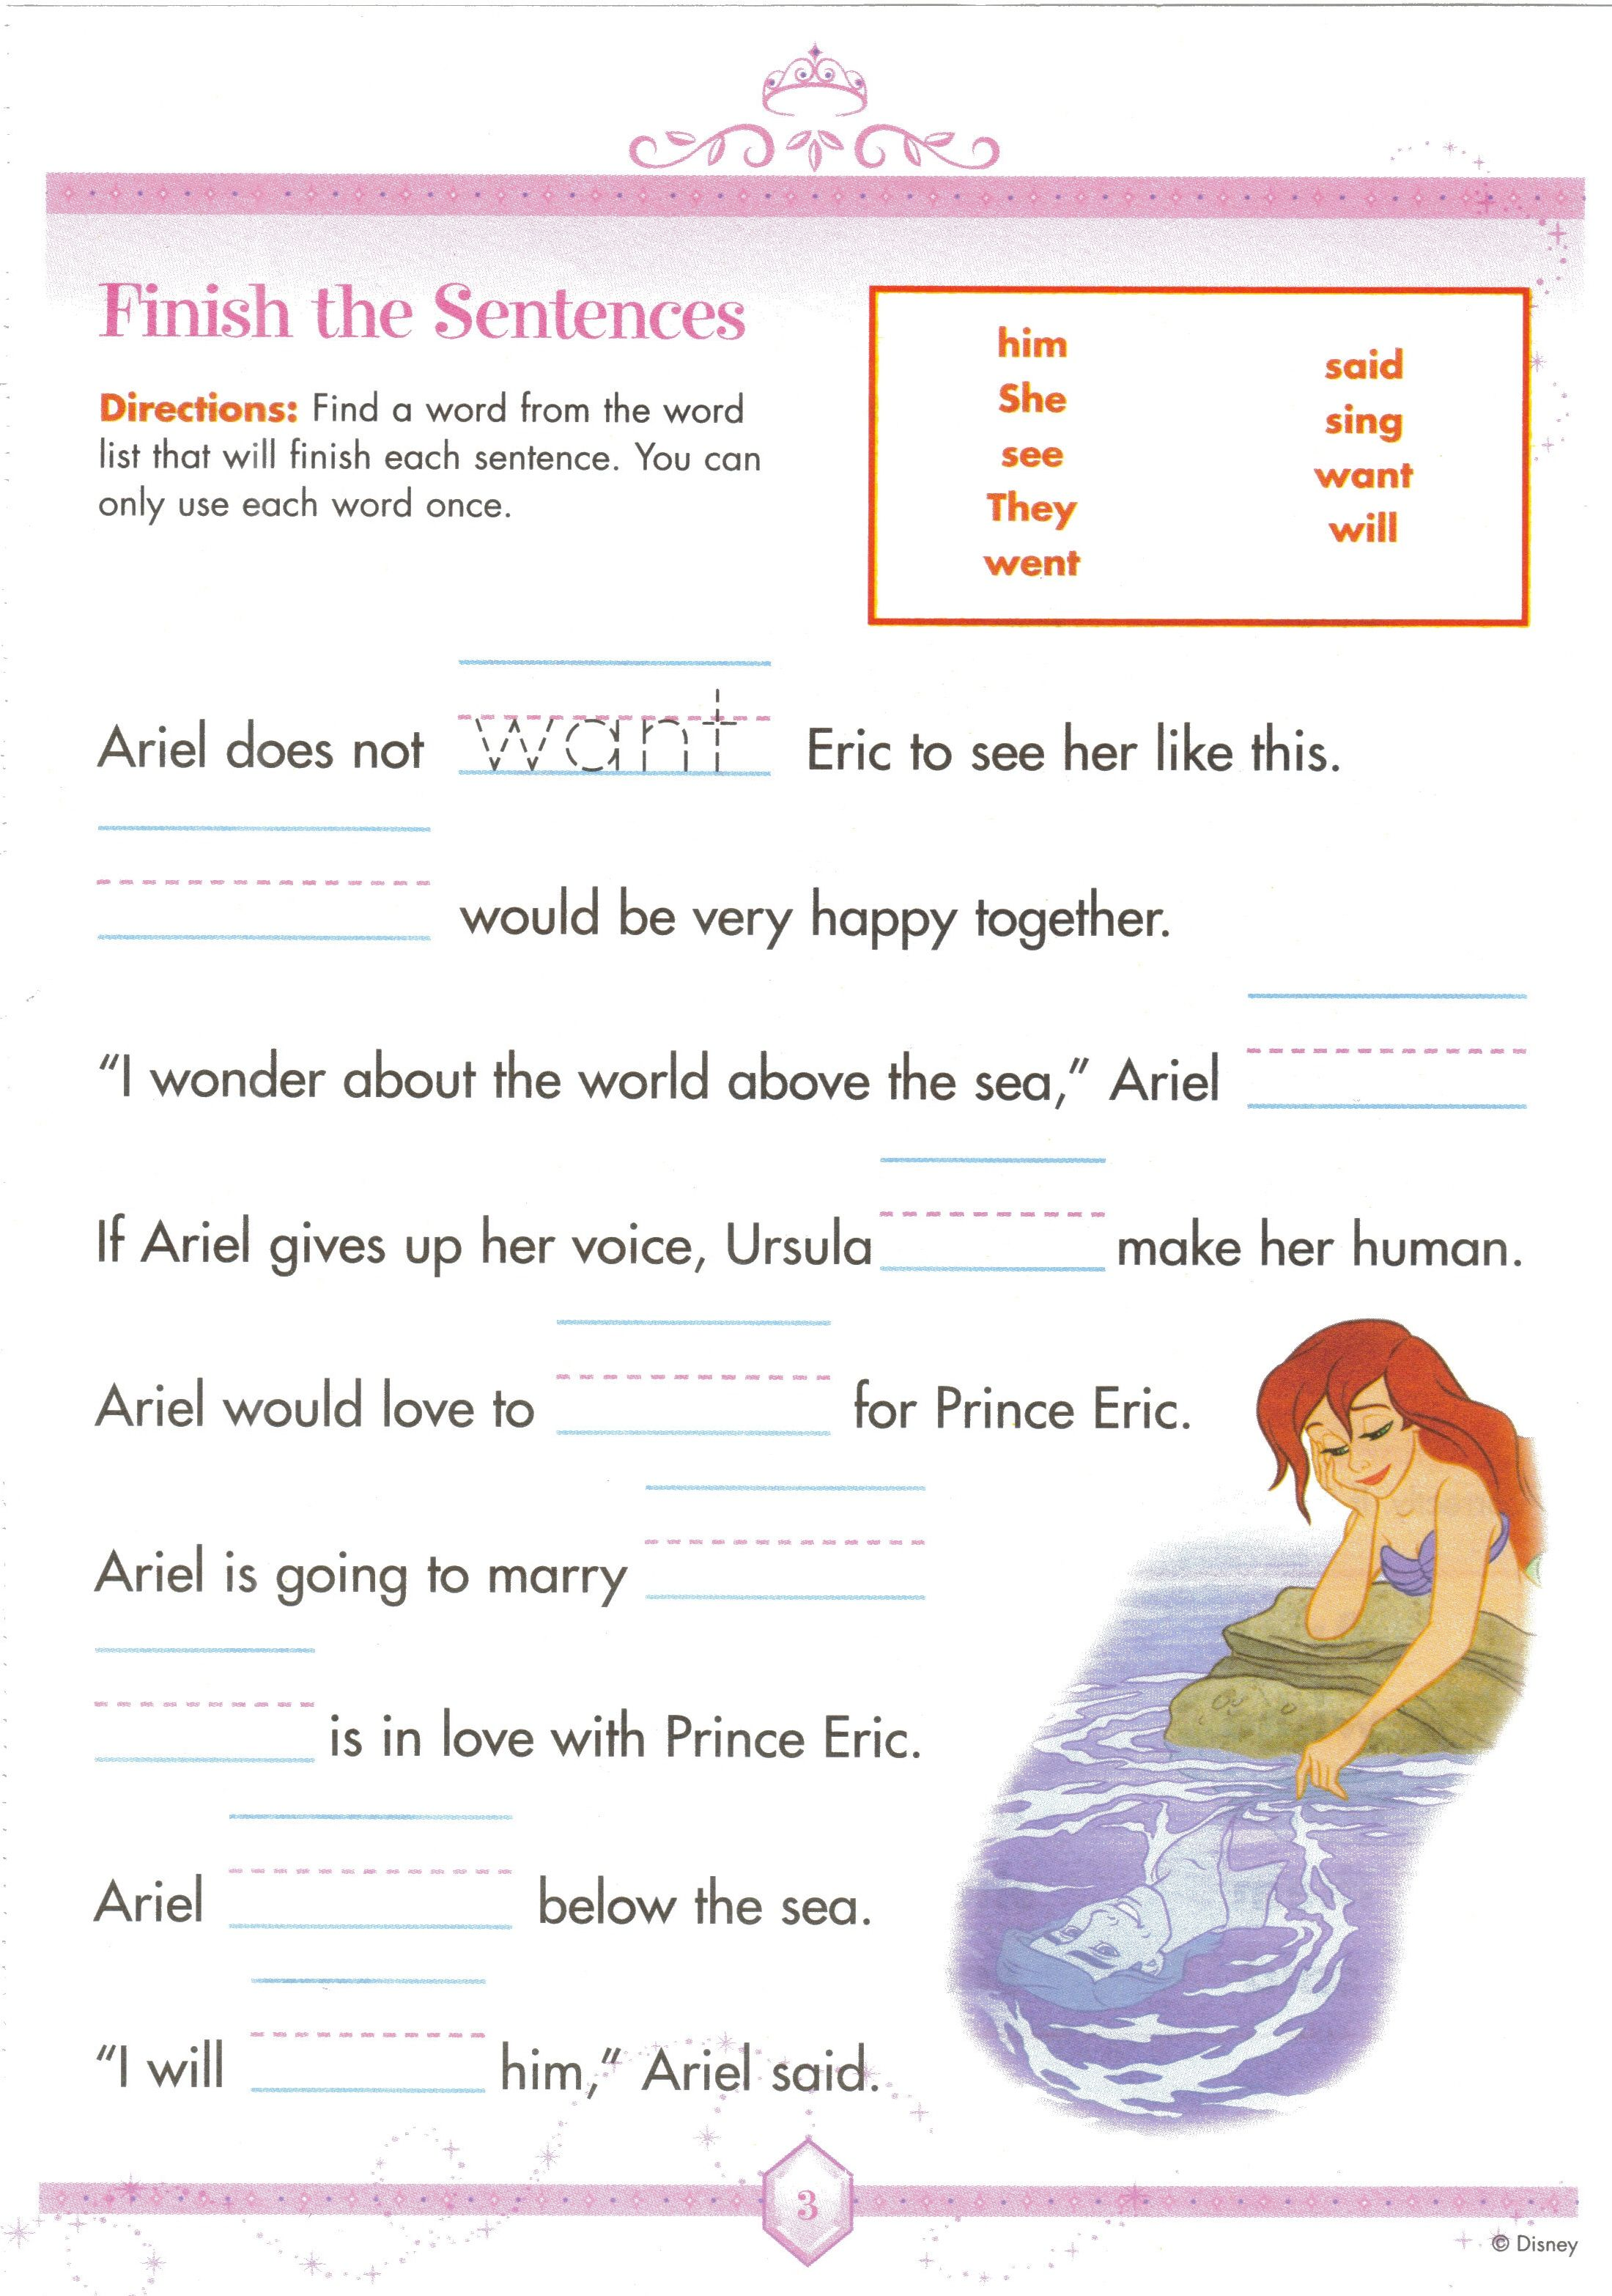 Weirdmailus  Winsome  Images About Worksheets On Pinterest  Fun Facts For Kids  With Heavenly  Images About Worksheets On Pinterest  Fun Facts For Kids Earth Day Worksheets And Jungles With Astonishing Blank Handwriting Worksheets For Kindergarten Also Math For Th Graders Printable Worksheets In Addition Letter L Worksheets For Preschoolers And Mark Twain Media Worksheets As Well As Spanish Months Of The Year Worksheet Additionally Cause And Effect Worksheets For St Grade From Pinterestcom With Weirdmailus  Heavenly  Images About Worksheets On Pinterest  Fun Facts For Kids  With Astonishing  Images About Worksheets On Pinterest  Fun Facts For Kids Earth Day Worksheets And Jungles And Winsome Blank Handwriting Worksheets For Kindergarten Also Math For Th Graders Printable Worksheets In Addition Letter L Worksheets For Preschoolers From Pinterestcom